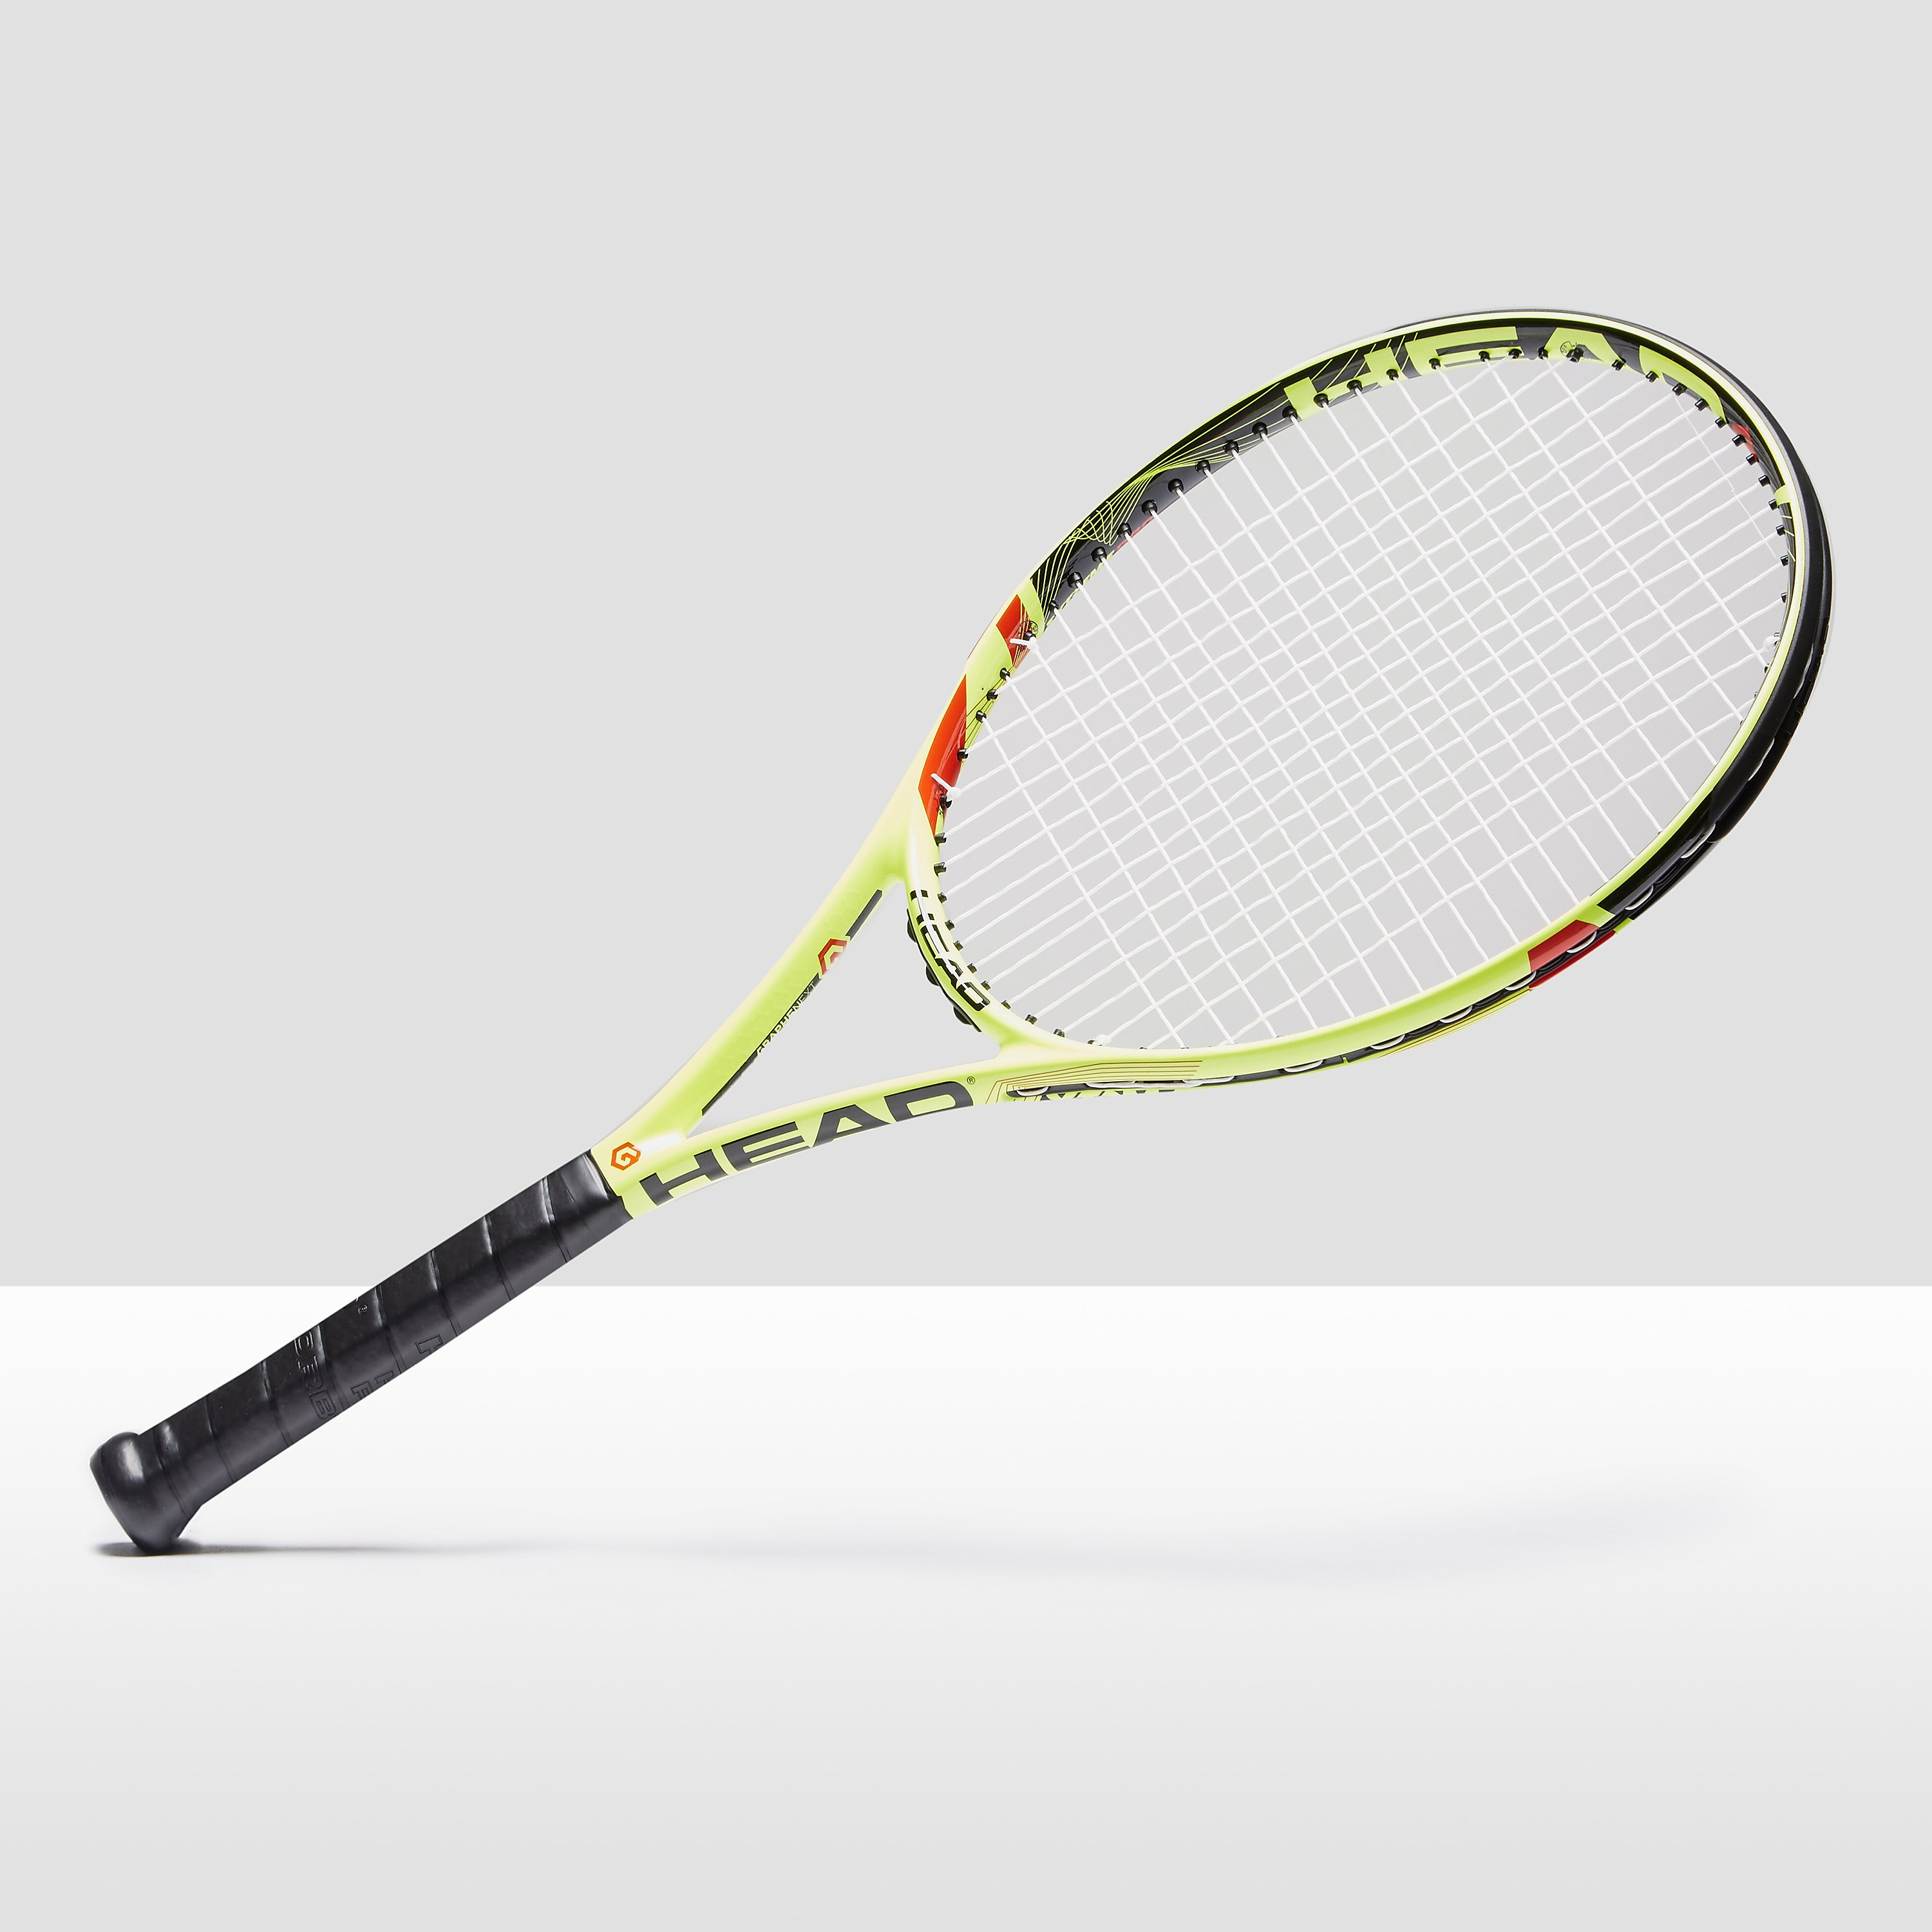 Head Graphene Extreme Pro Tennis Racket